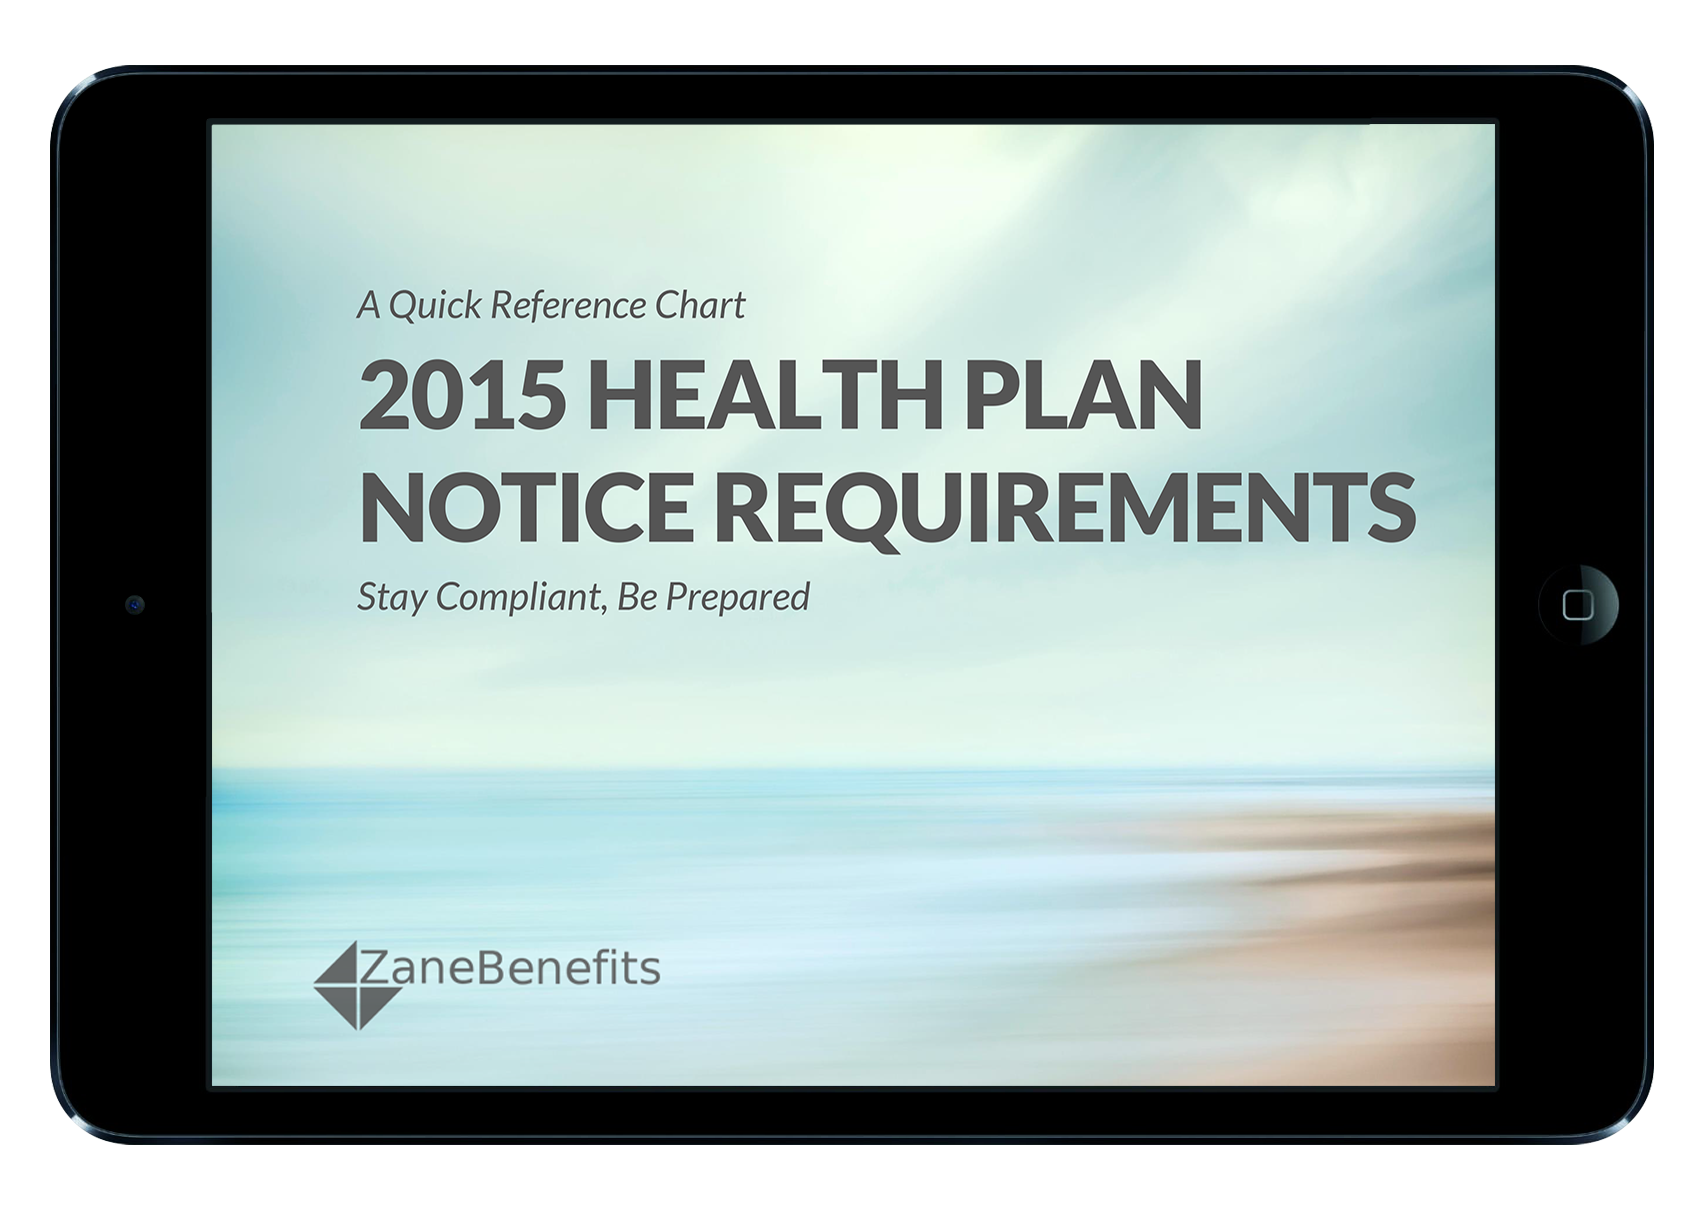 2015 Health Plan Notice Requirements